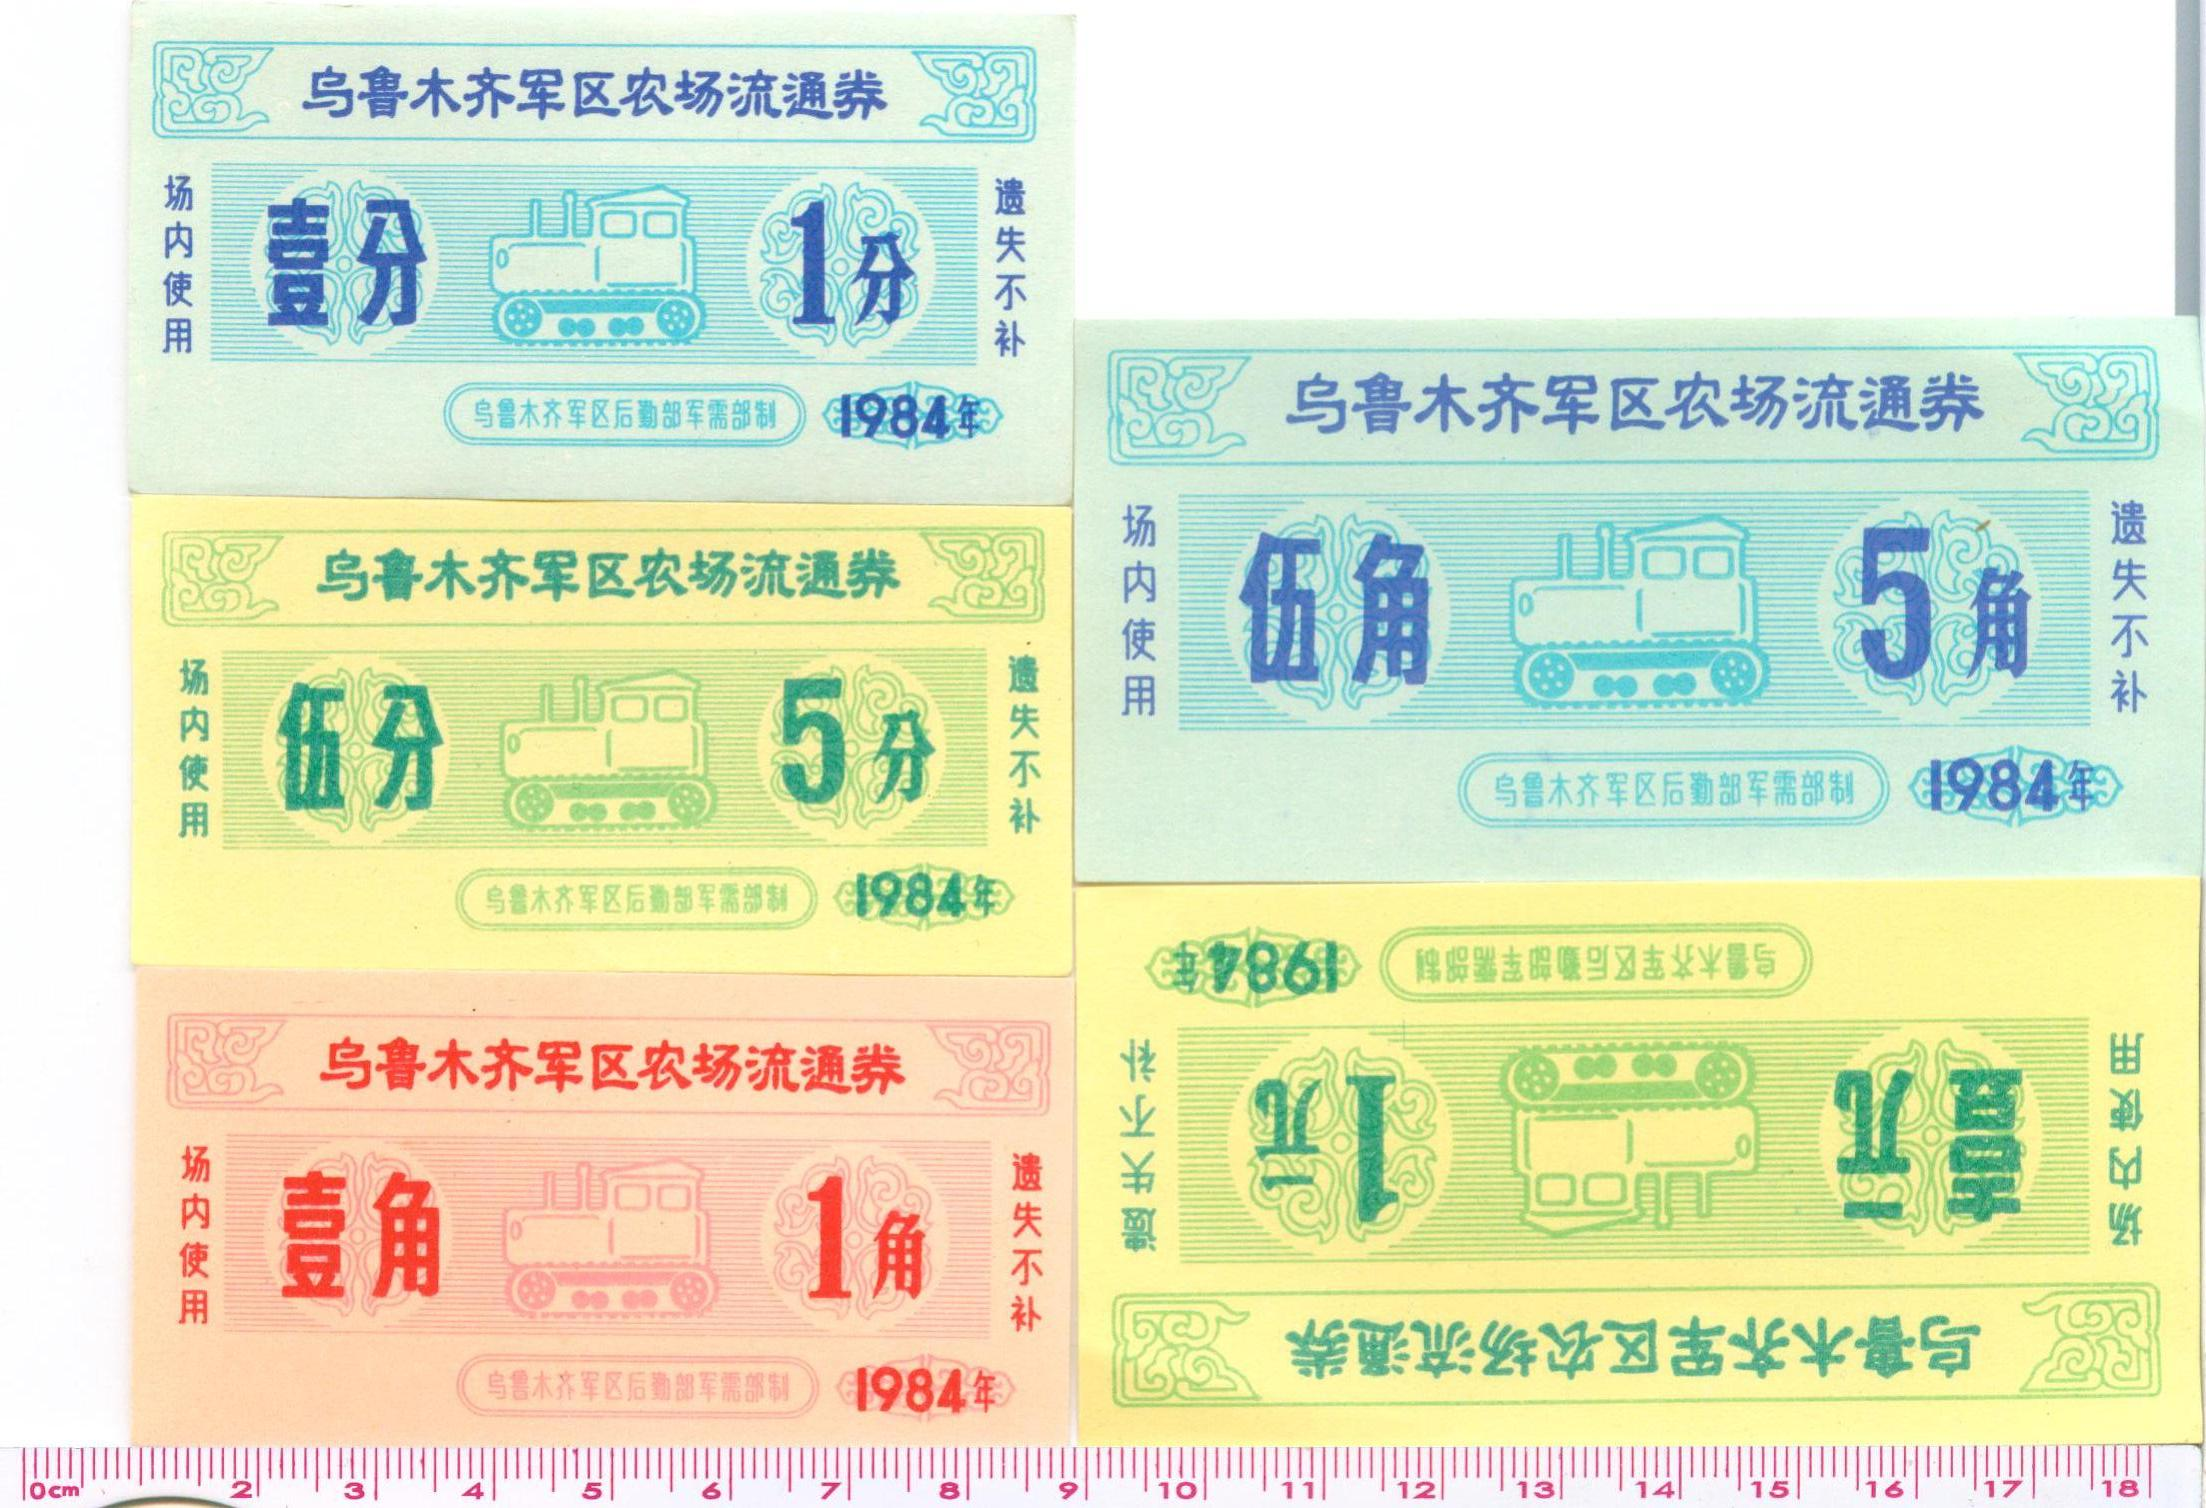 H0201, China Xinjiang (Sinkiang) Local Military Tokens (Coupons) 5 Pcs, 1984